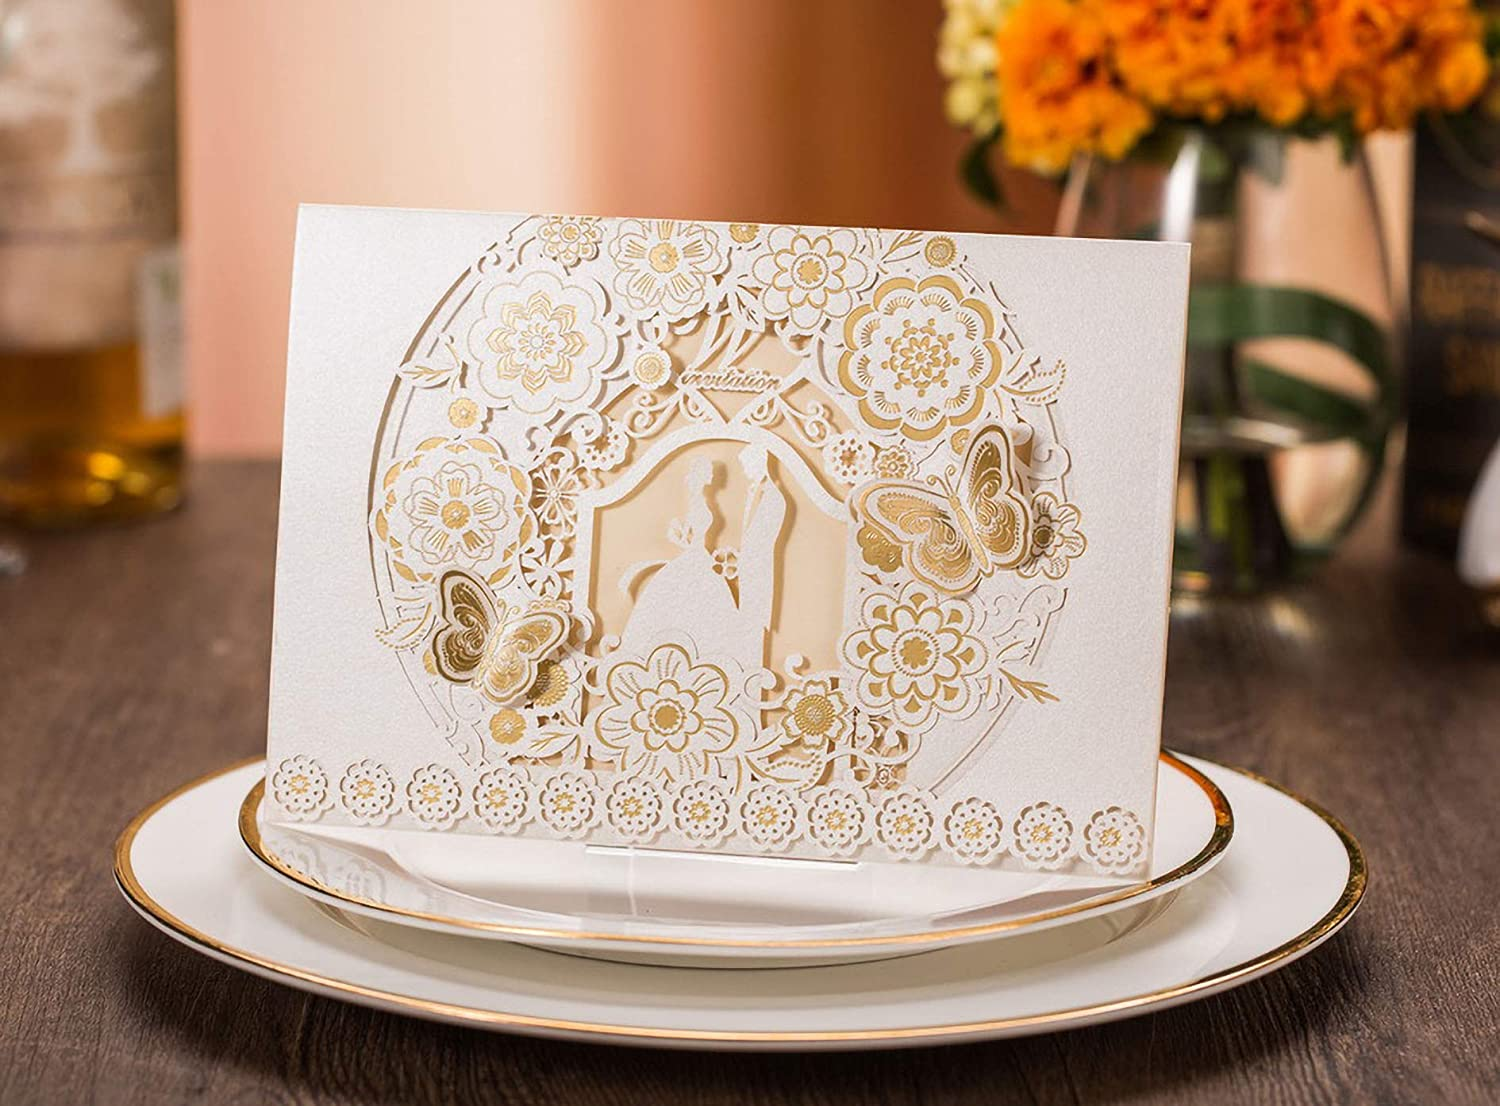 Tennove 50pcs Invitation Cards Laser Cut White Wedding Party Invitations Cards With Lace For Wedding Engagement Party